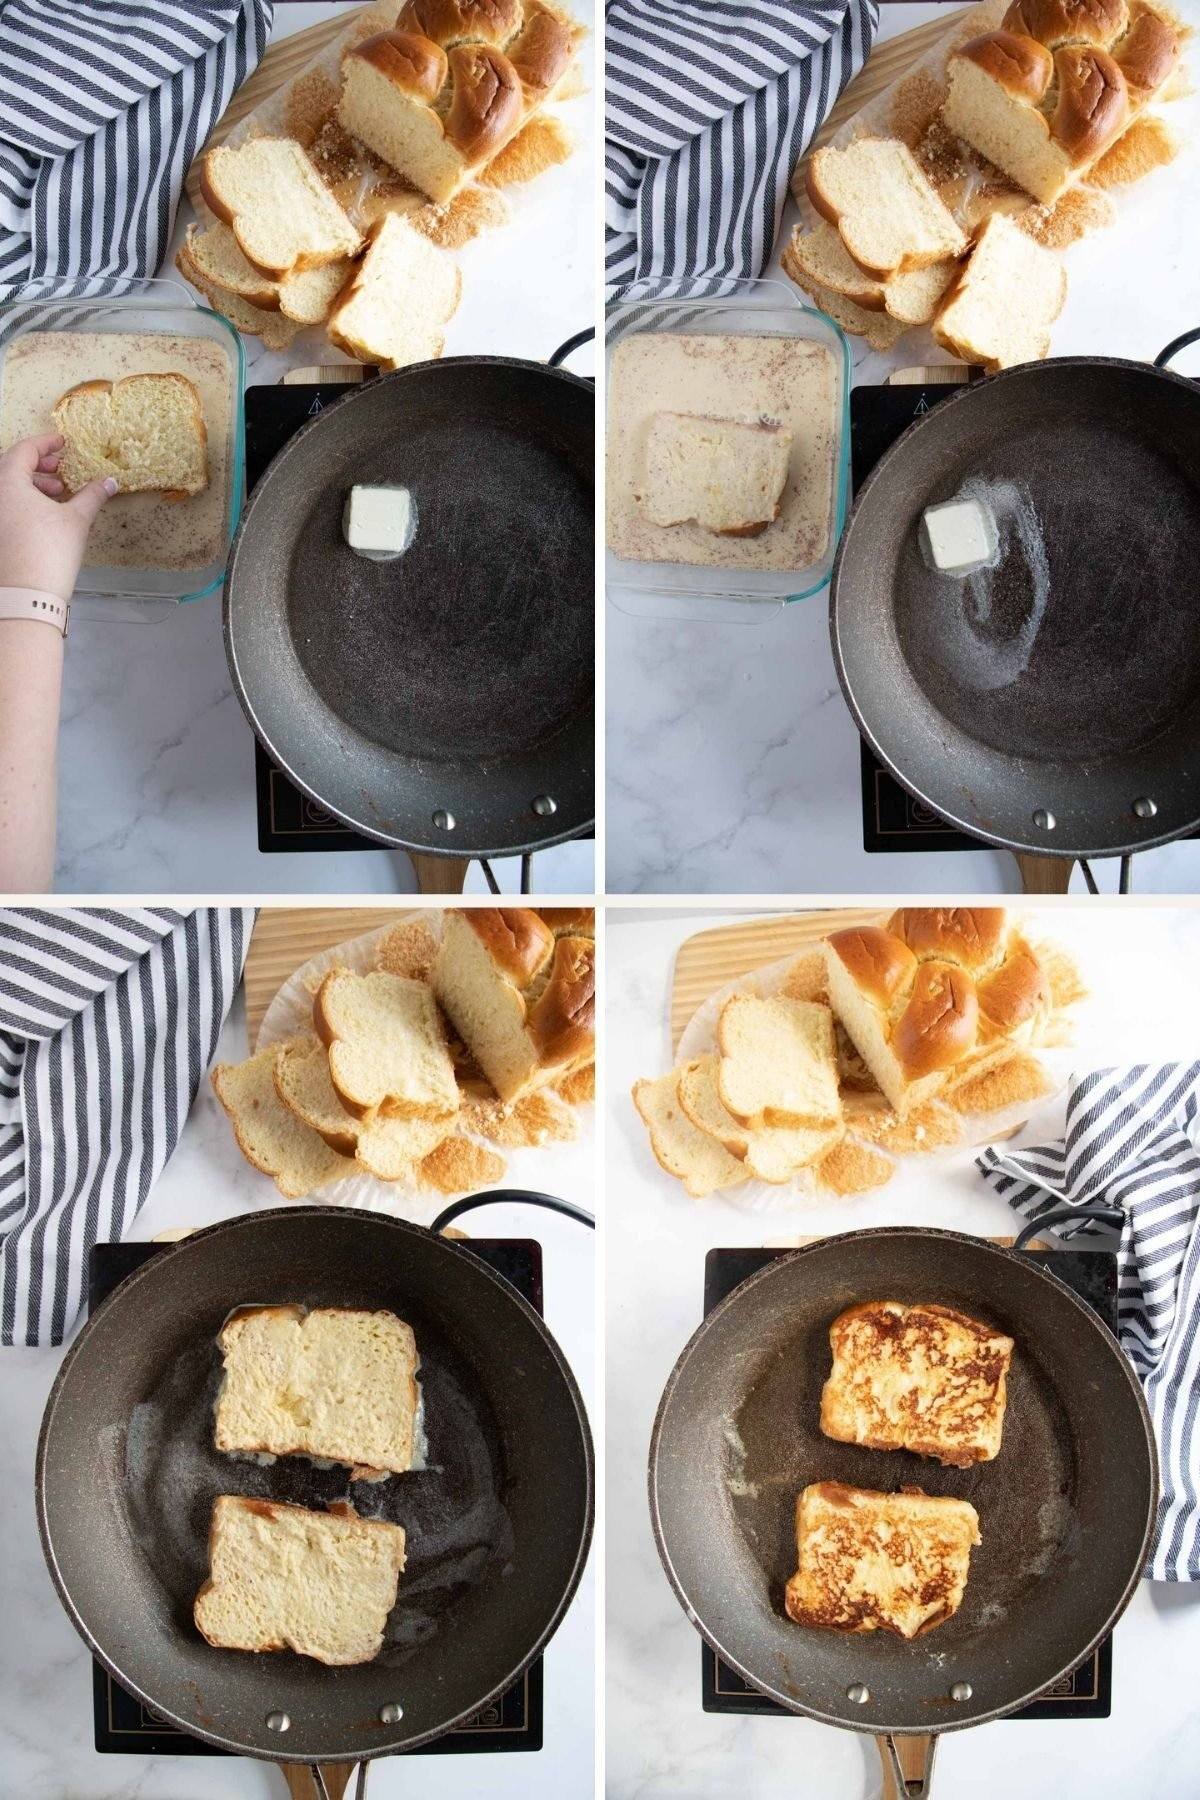 step by step photos showing how to make french toast